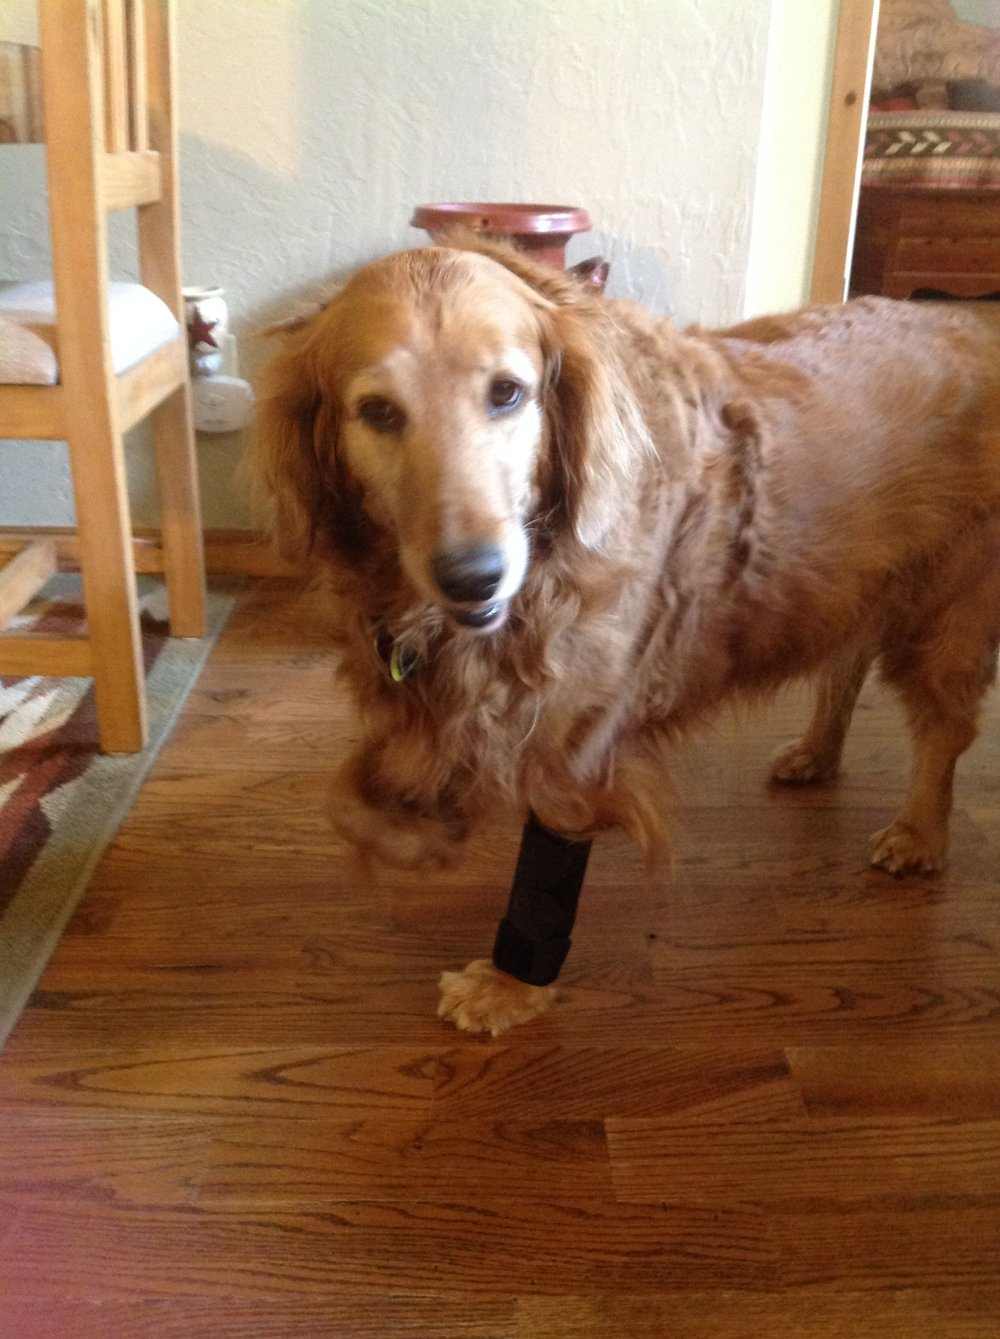 gracie - 9 Year Old Golden Retriever ~ Okemah, OK ~ Custom Front-Wheel Cart ~ $900Wheelchair Ordered!Gracie has been on 3 legs for 1&1/2 yrs. she has nerve neuropathy in her cervical spine and total atrophy of her front right leg. Her left leg is wearing out.Any help would be greatly appreciated. -Gracie's Mom